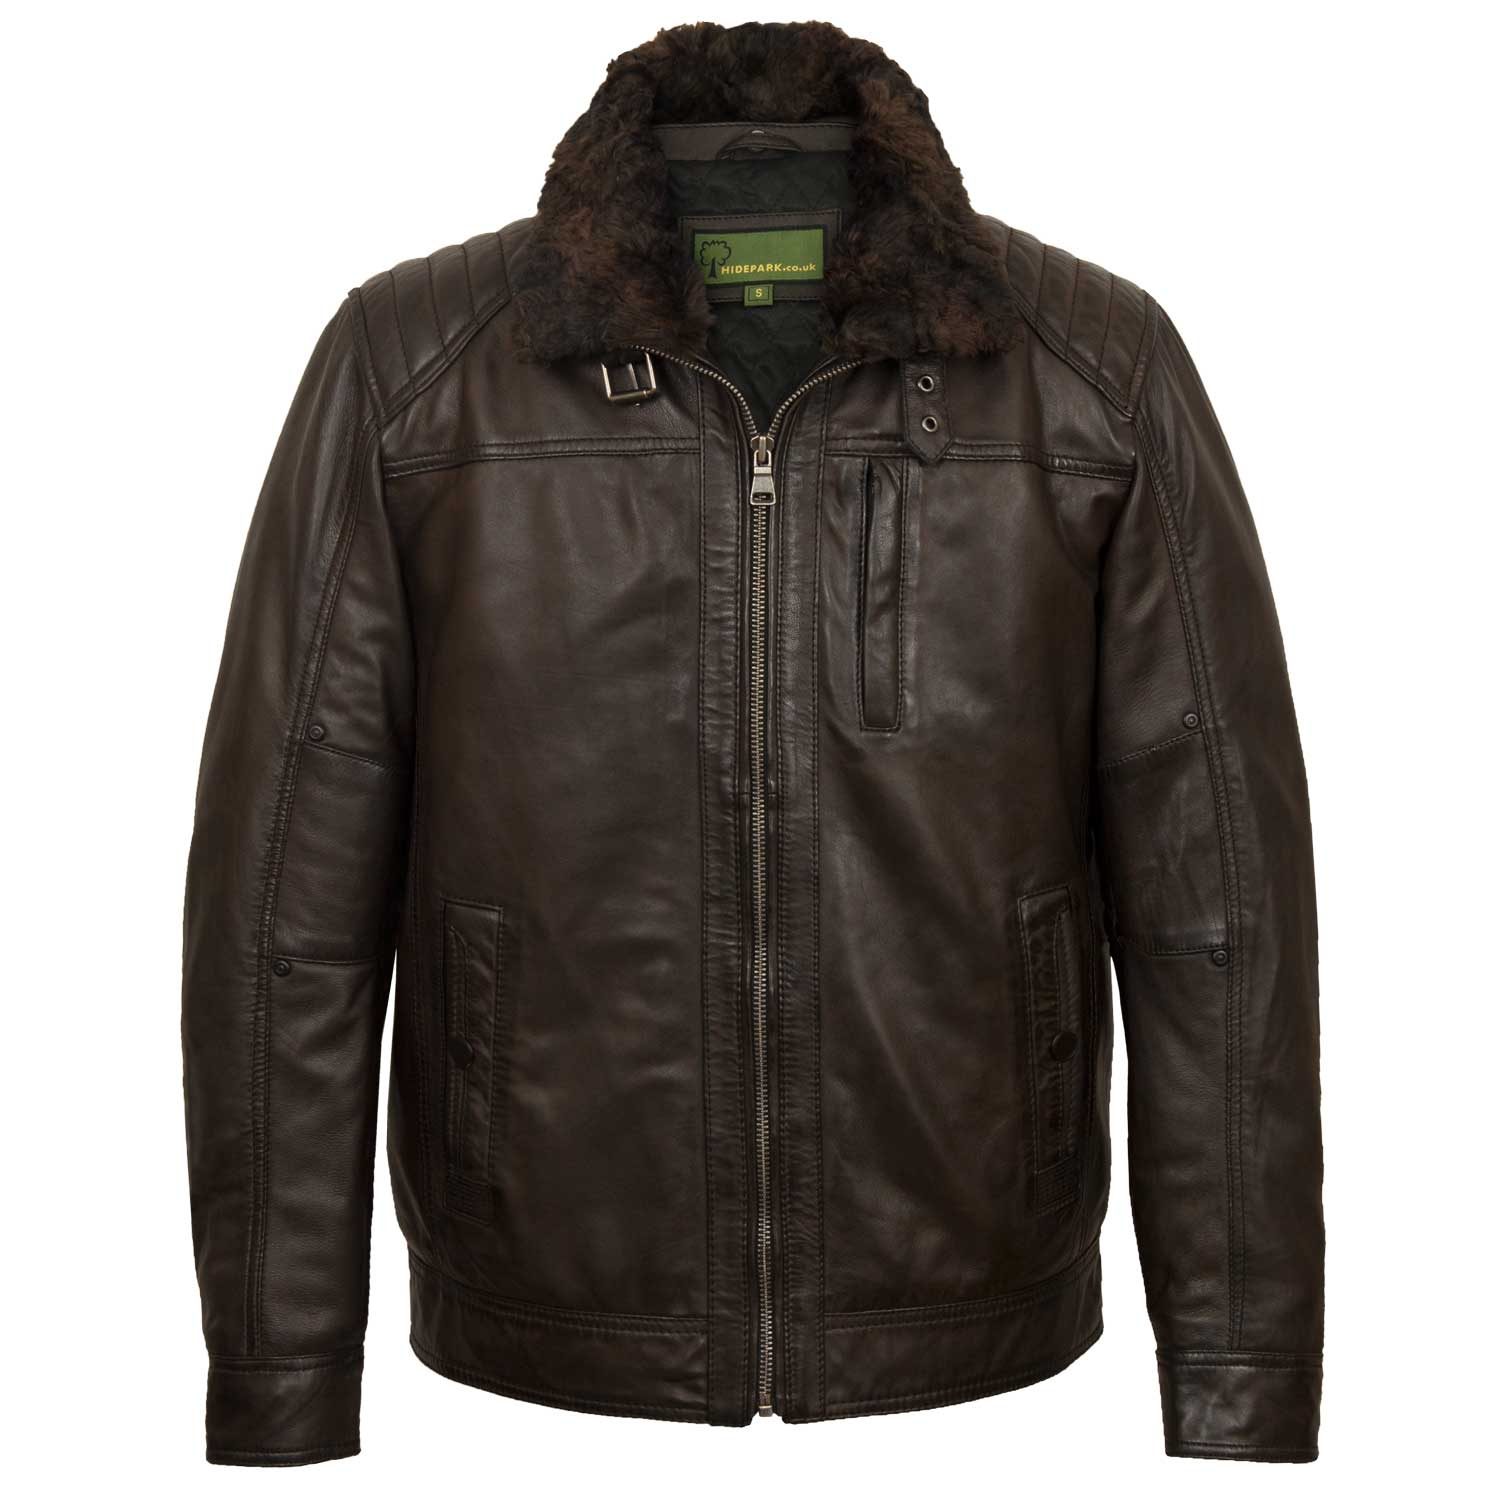 Mens brown leather jacket Danny